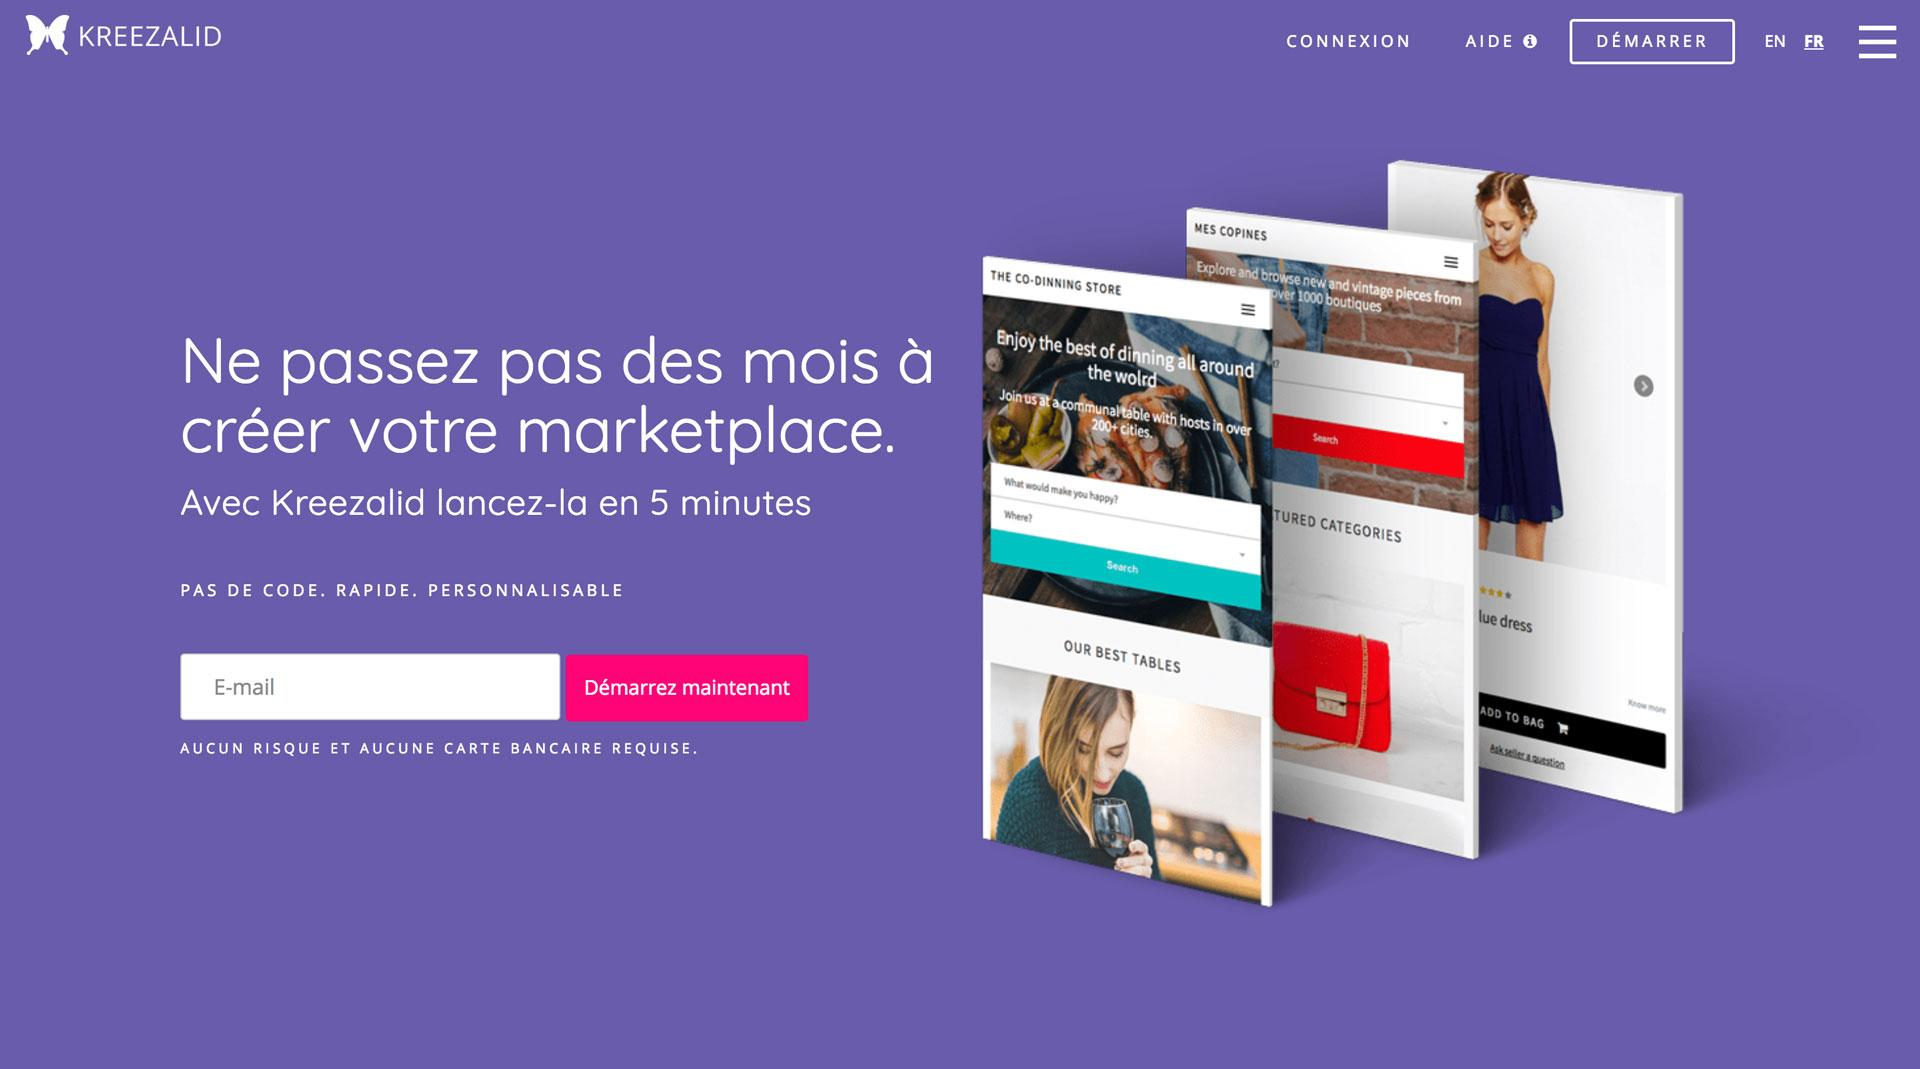 Kreezalid homepage That Explains how to Easily Build your own marketplace